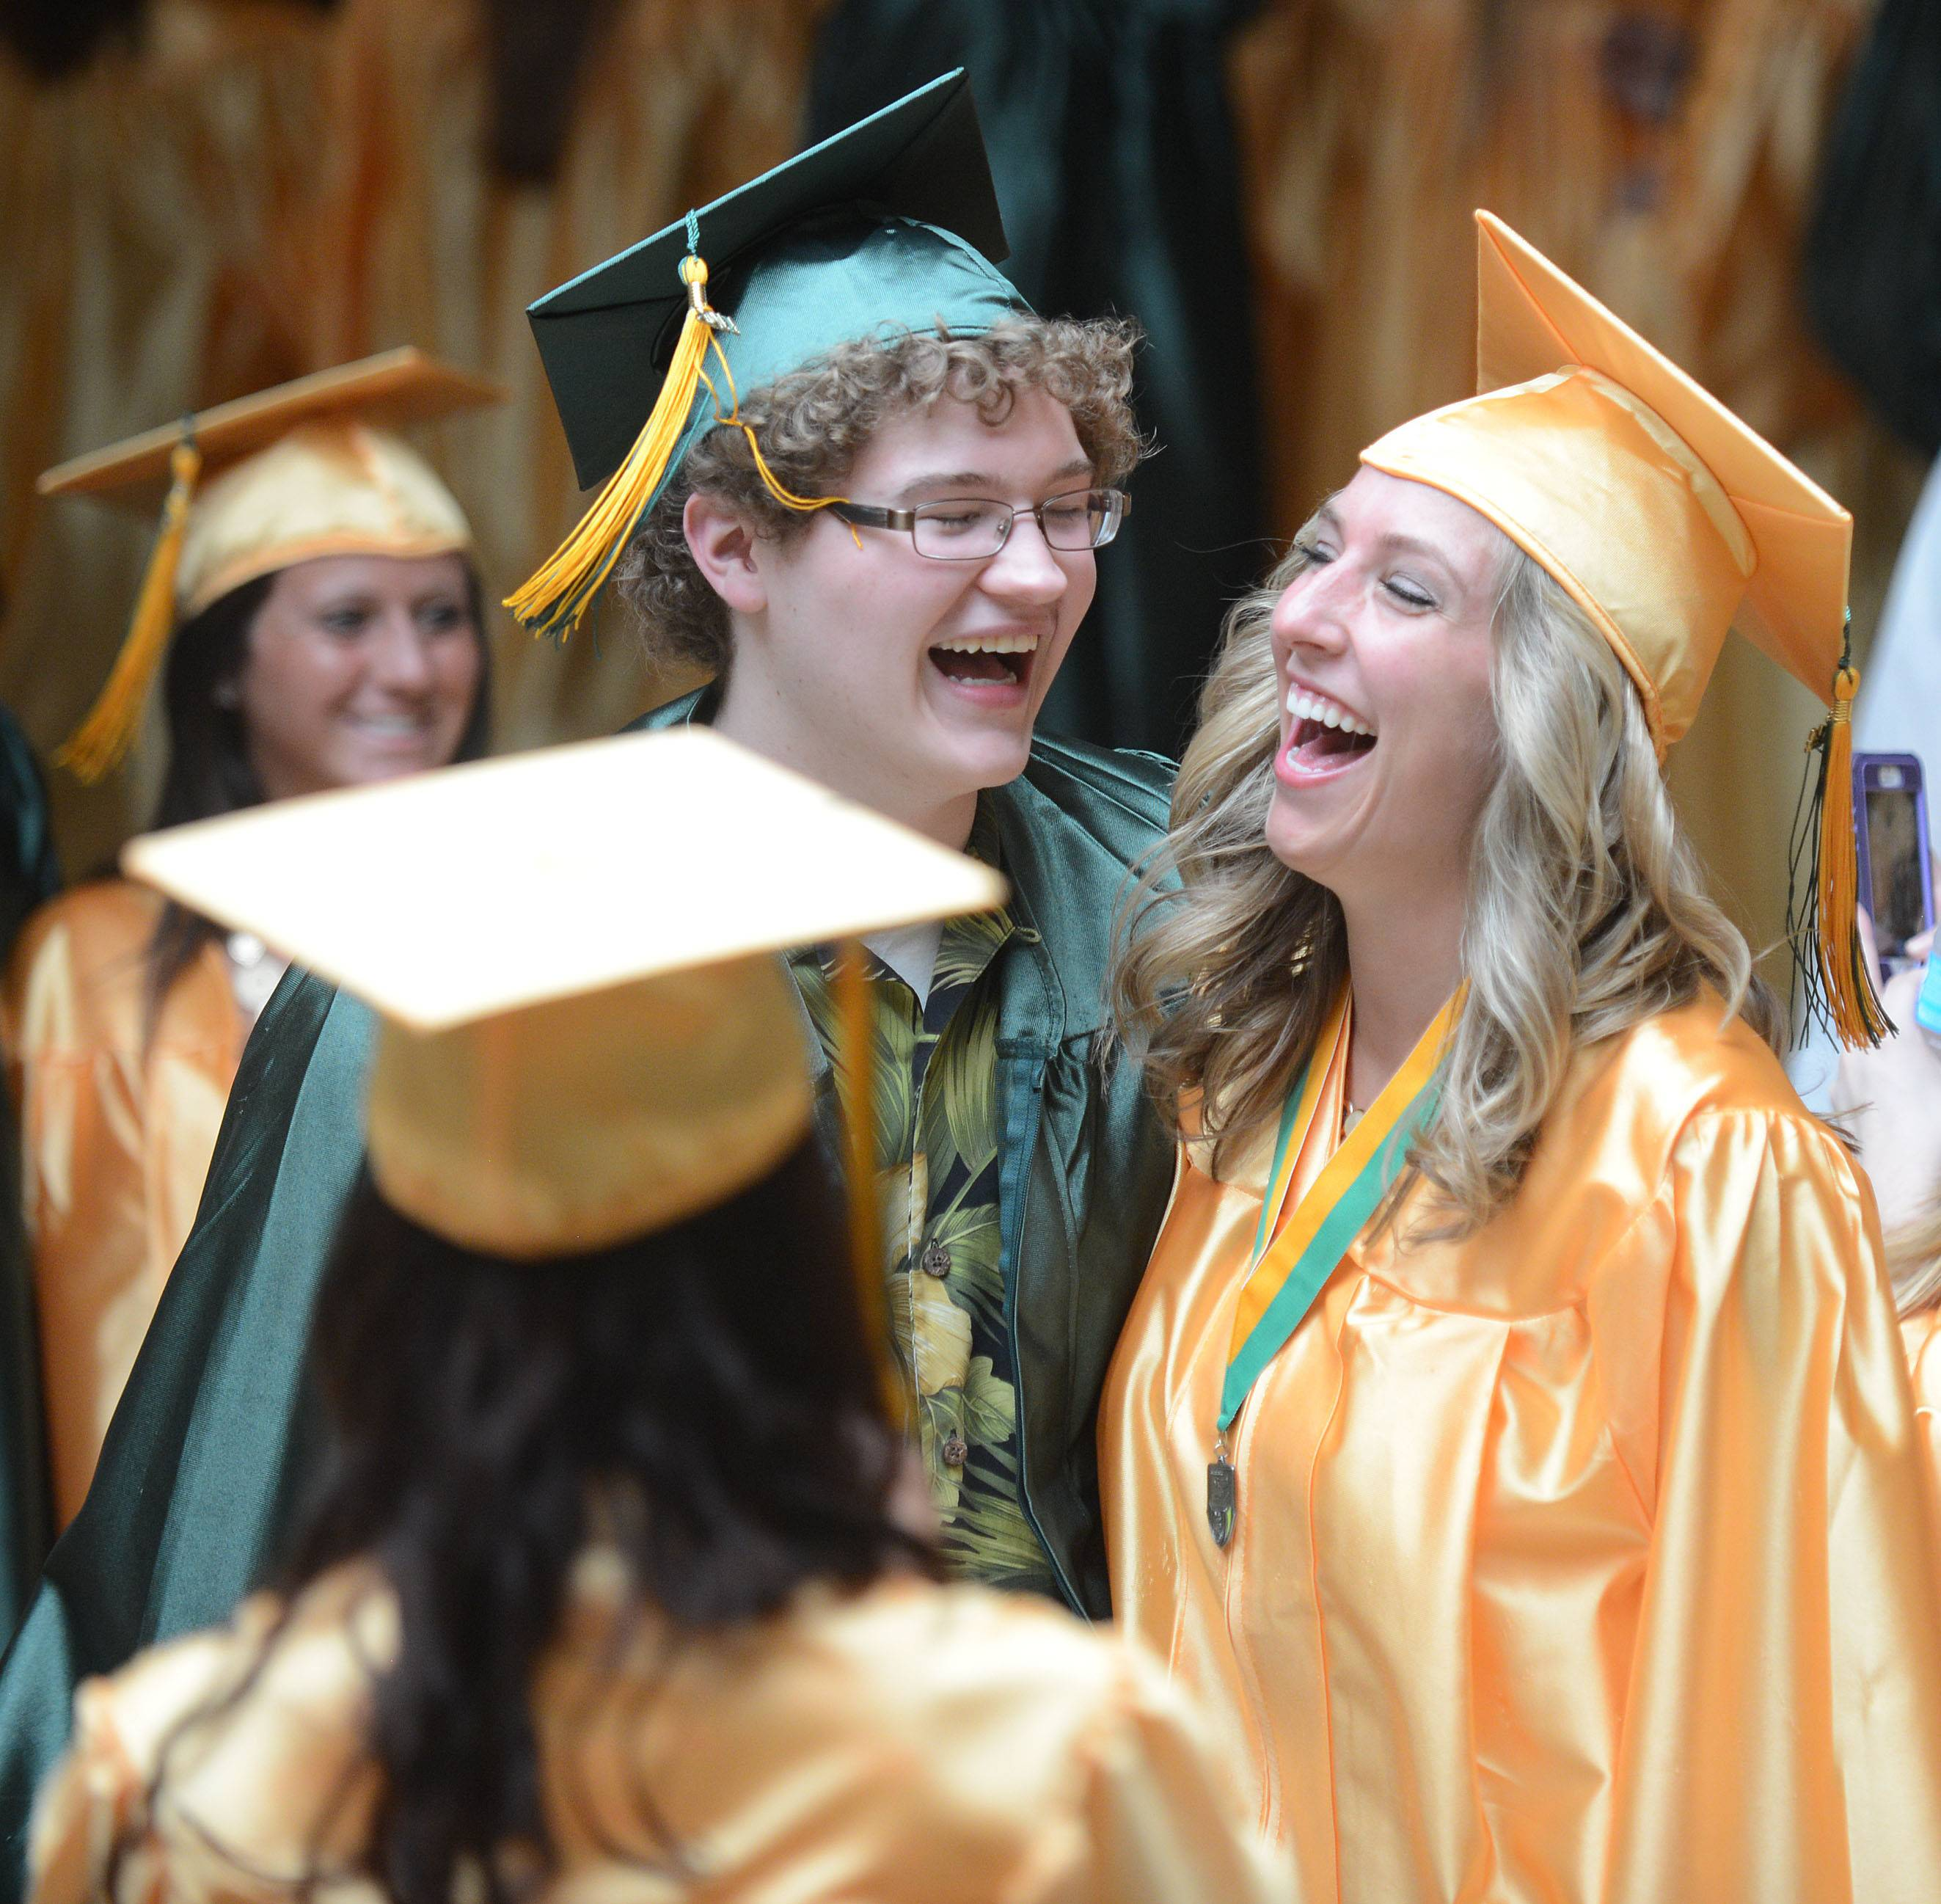 Crystal Lake South graduates Alex LoSchiavo, left, and Holly Schumacher, right, break out into laughter while Ashley Resek takes their picture before their commencement ceremony on Saturday, May 31.